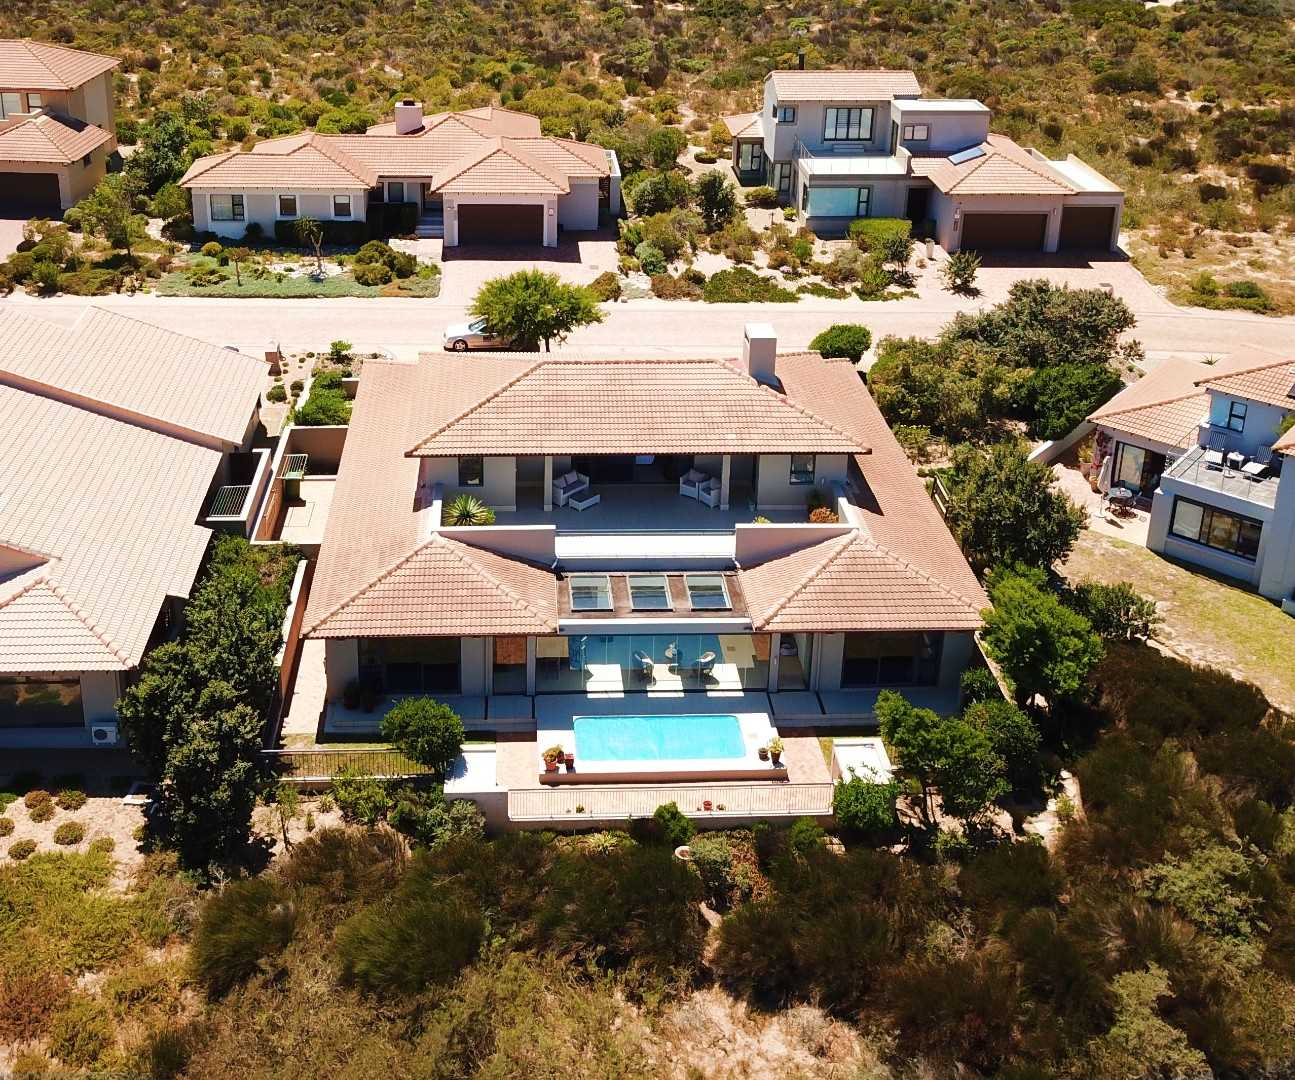 Aerial view of this Executive Home